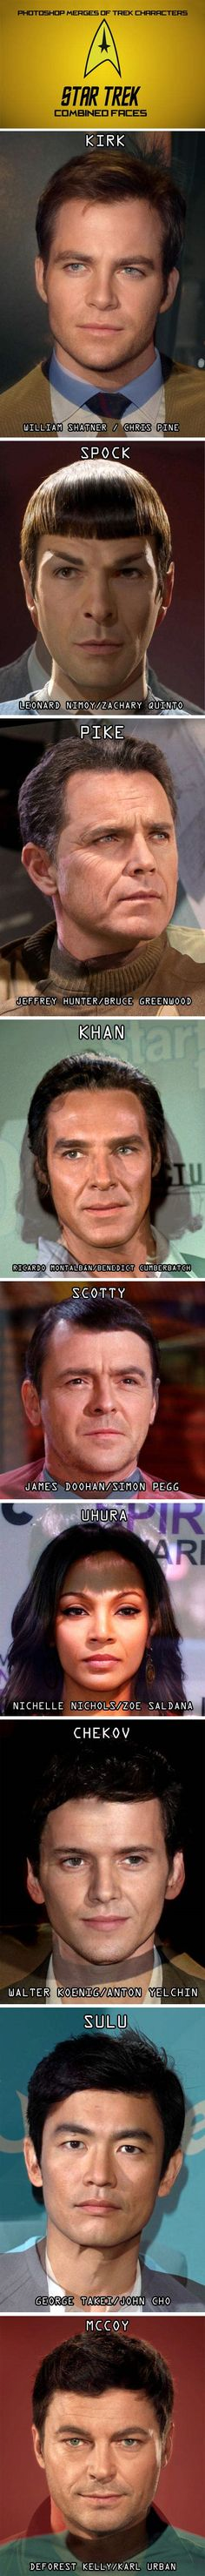 Photoshop merges: combined faces of old & new Star Trek actors ~ whoa, freaky! | William Shatner & Chris Pine blended for Captain James T. Kirk ~ Leonard Nimoy & Zachary Quinto for Spock ~ Jeffrey Hunter & Bruce Greenwood for Capt. Pike ~ Ricardo Montalbán & Benedict Cumberbatch as Khan ~ James Doohan & Simon Pegg as Scotty ~ Nichelle Nichols & Zoe Saldana as Uhura ~ Walter Koenig & Anton Yelchin as Chekov ~ George Takei & John Cho as Sulu ~ Deforest Kelly & Karl Urban as Bones McCoy